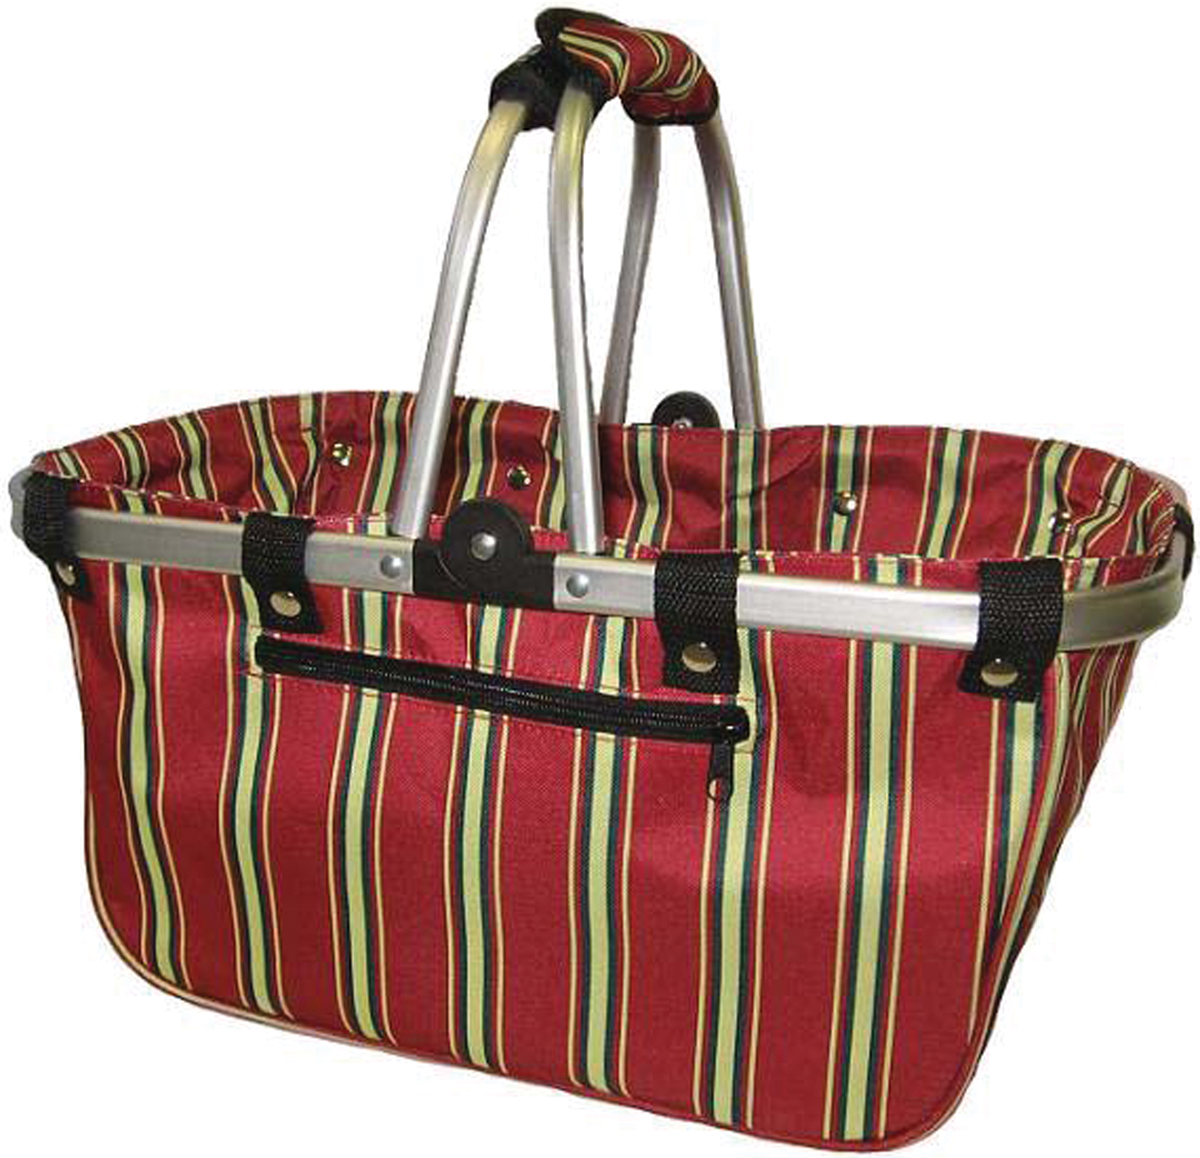 "JanetBasket Red Stripes Large Aluminum Frame Basket, 18"" x 10"" x 9.5"""